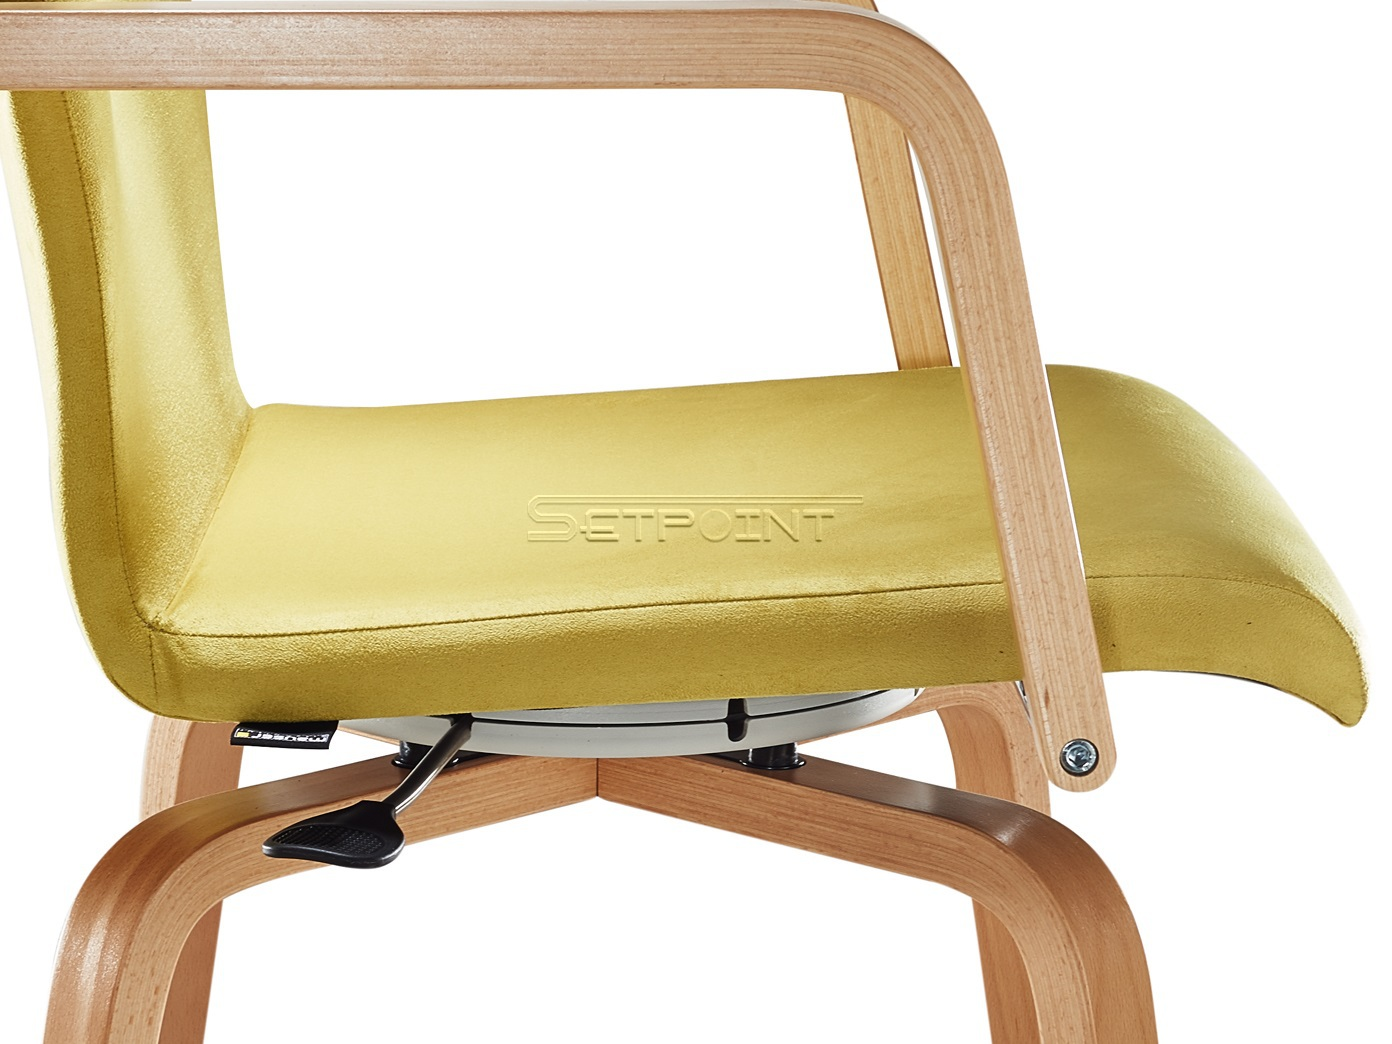 Relaxsessel Leiner Stressless Sessel L Zuhause Image Idee